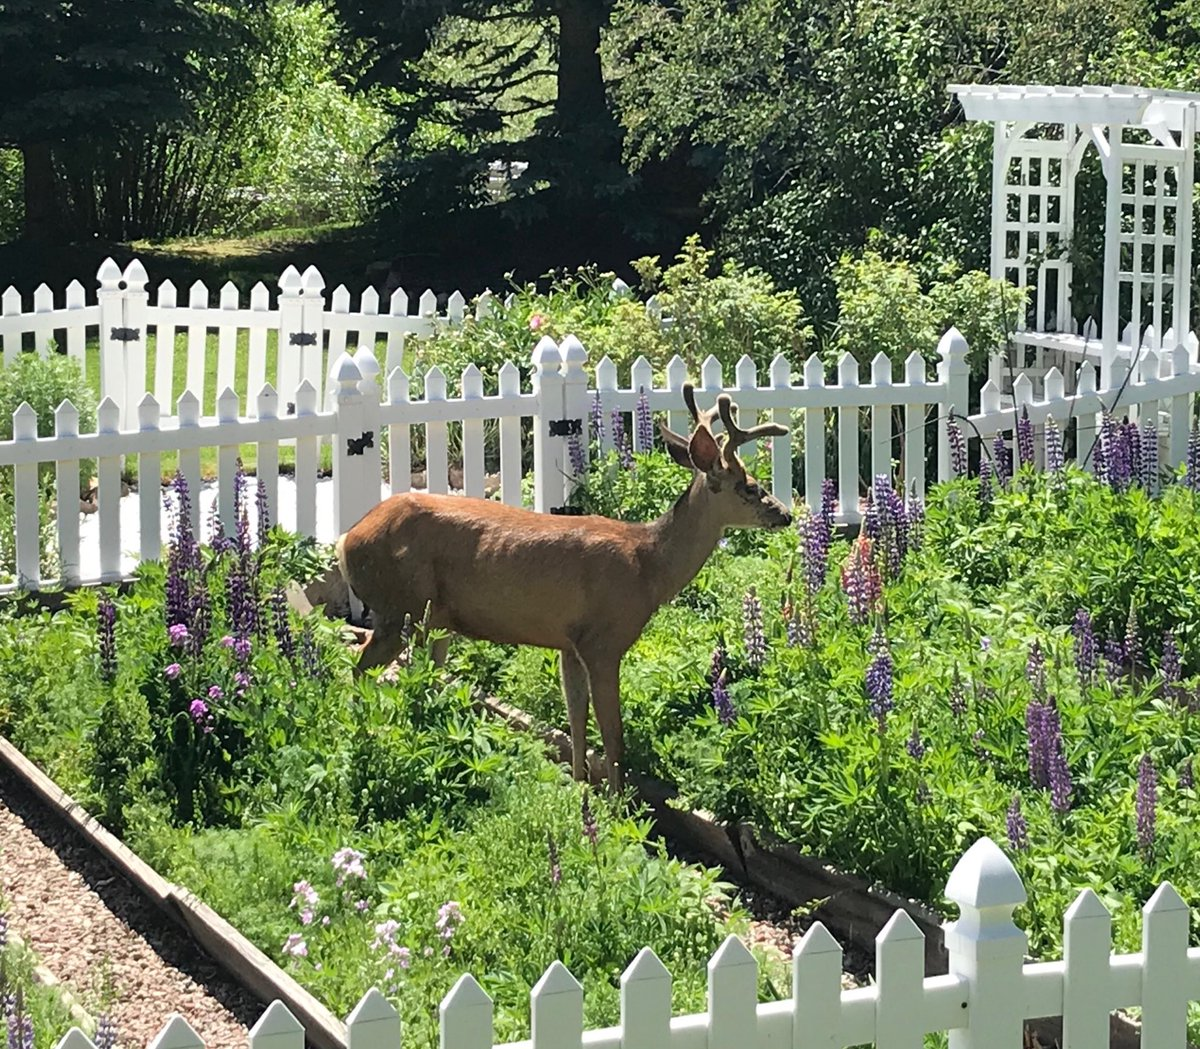 Young buck eating someone's flowers 😬 #roadtrip